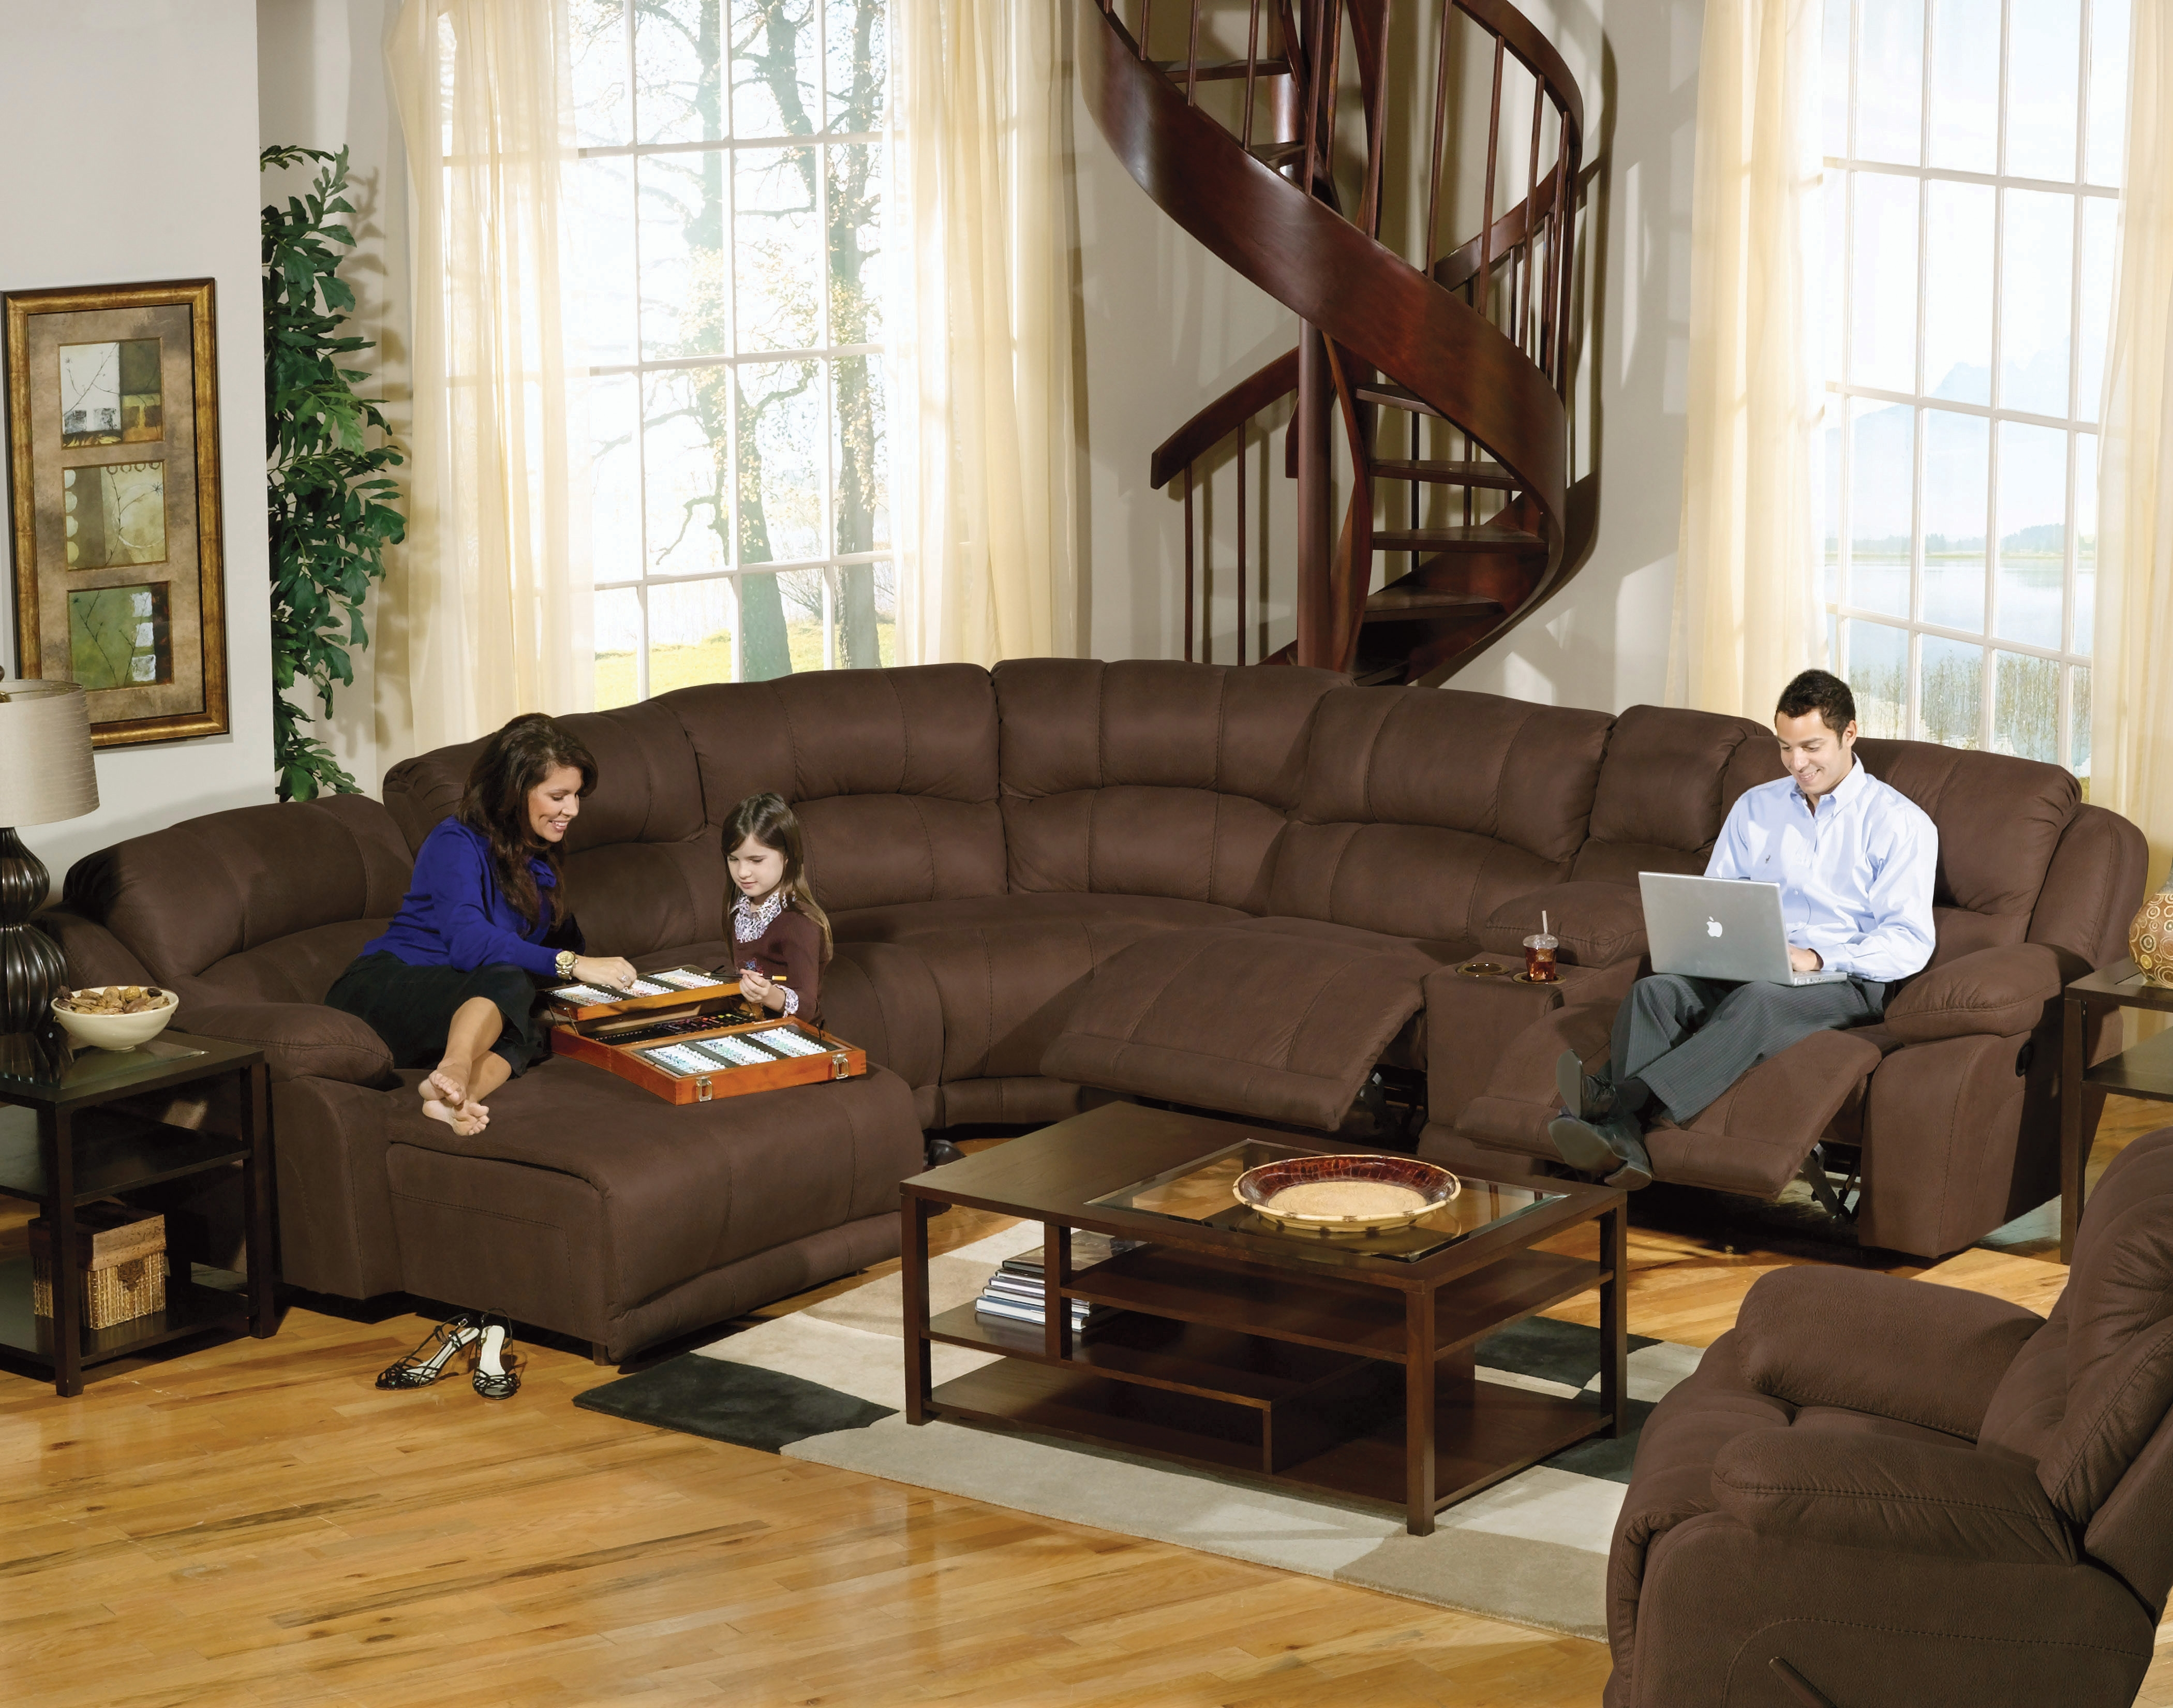 Sectional Couch With Recliner Ikea Couch Bed Large Leather In Best And Newest Large Sectionals With Chaise (View 10 of 15)